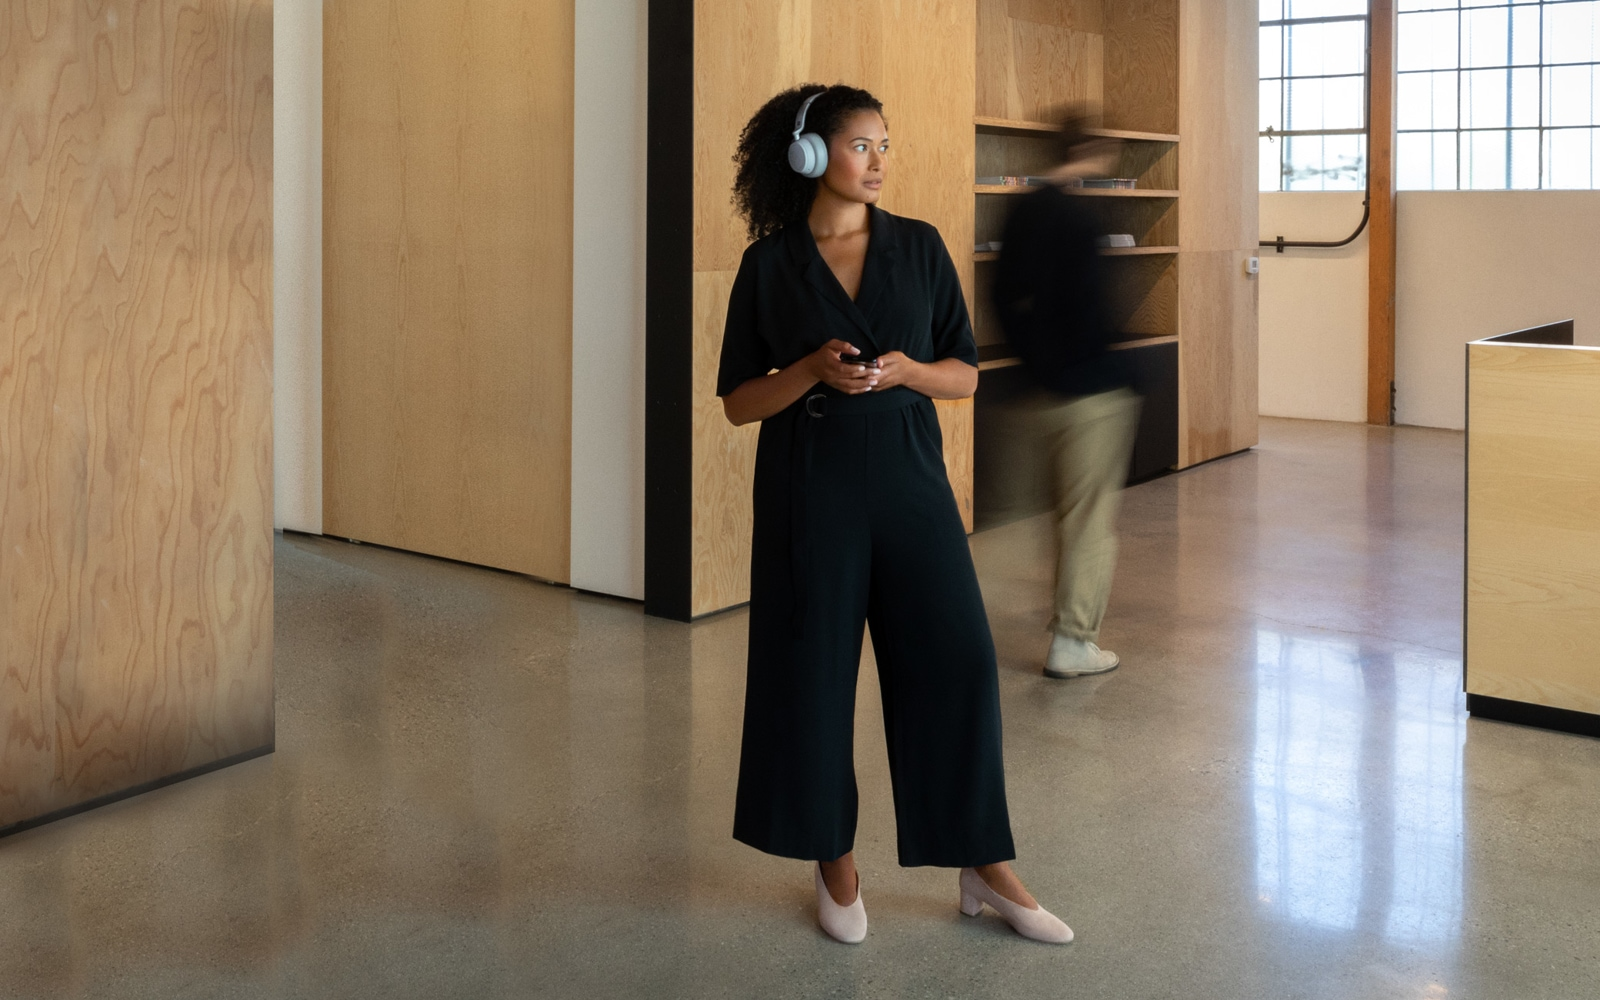 A woman standing with Surface Headphones on her head